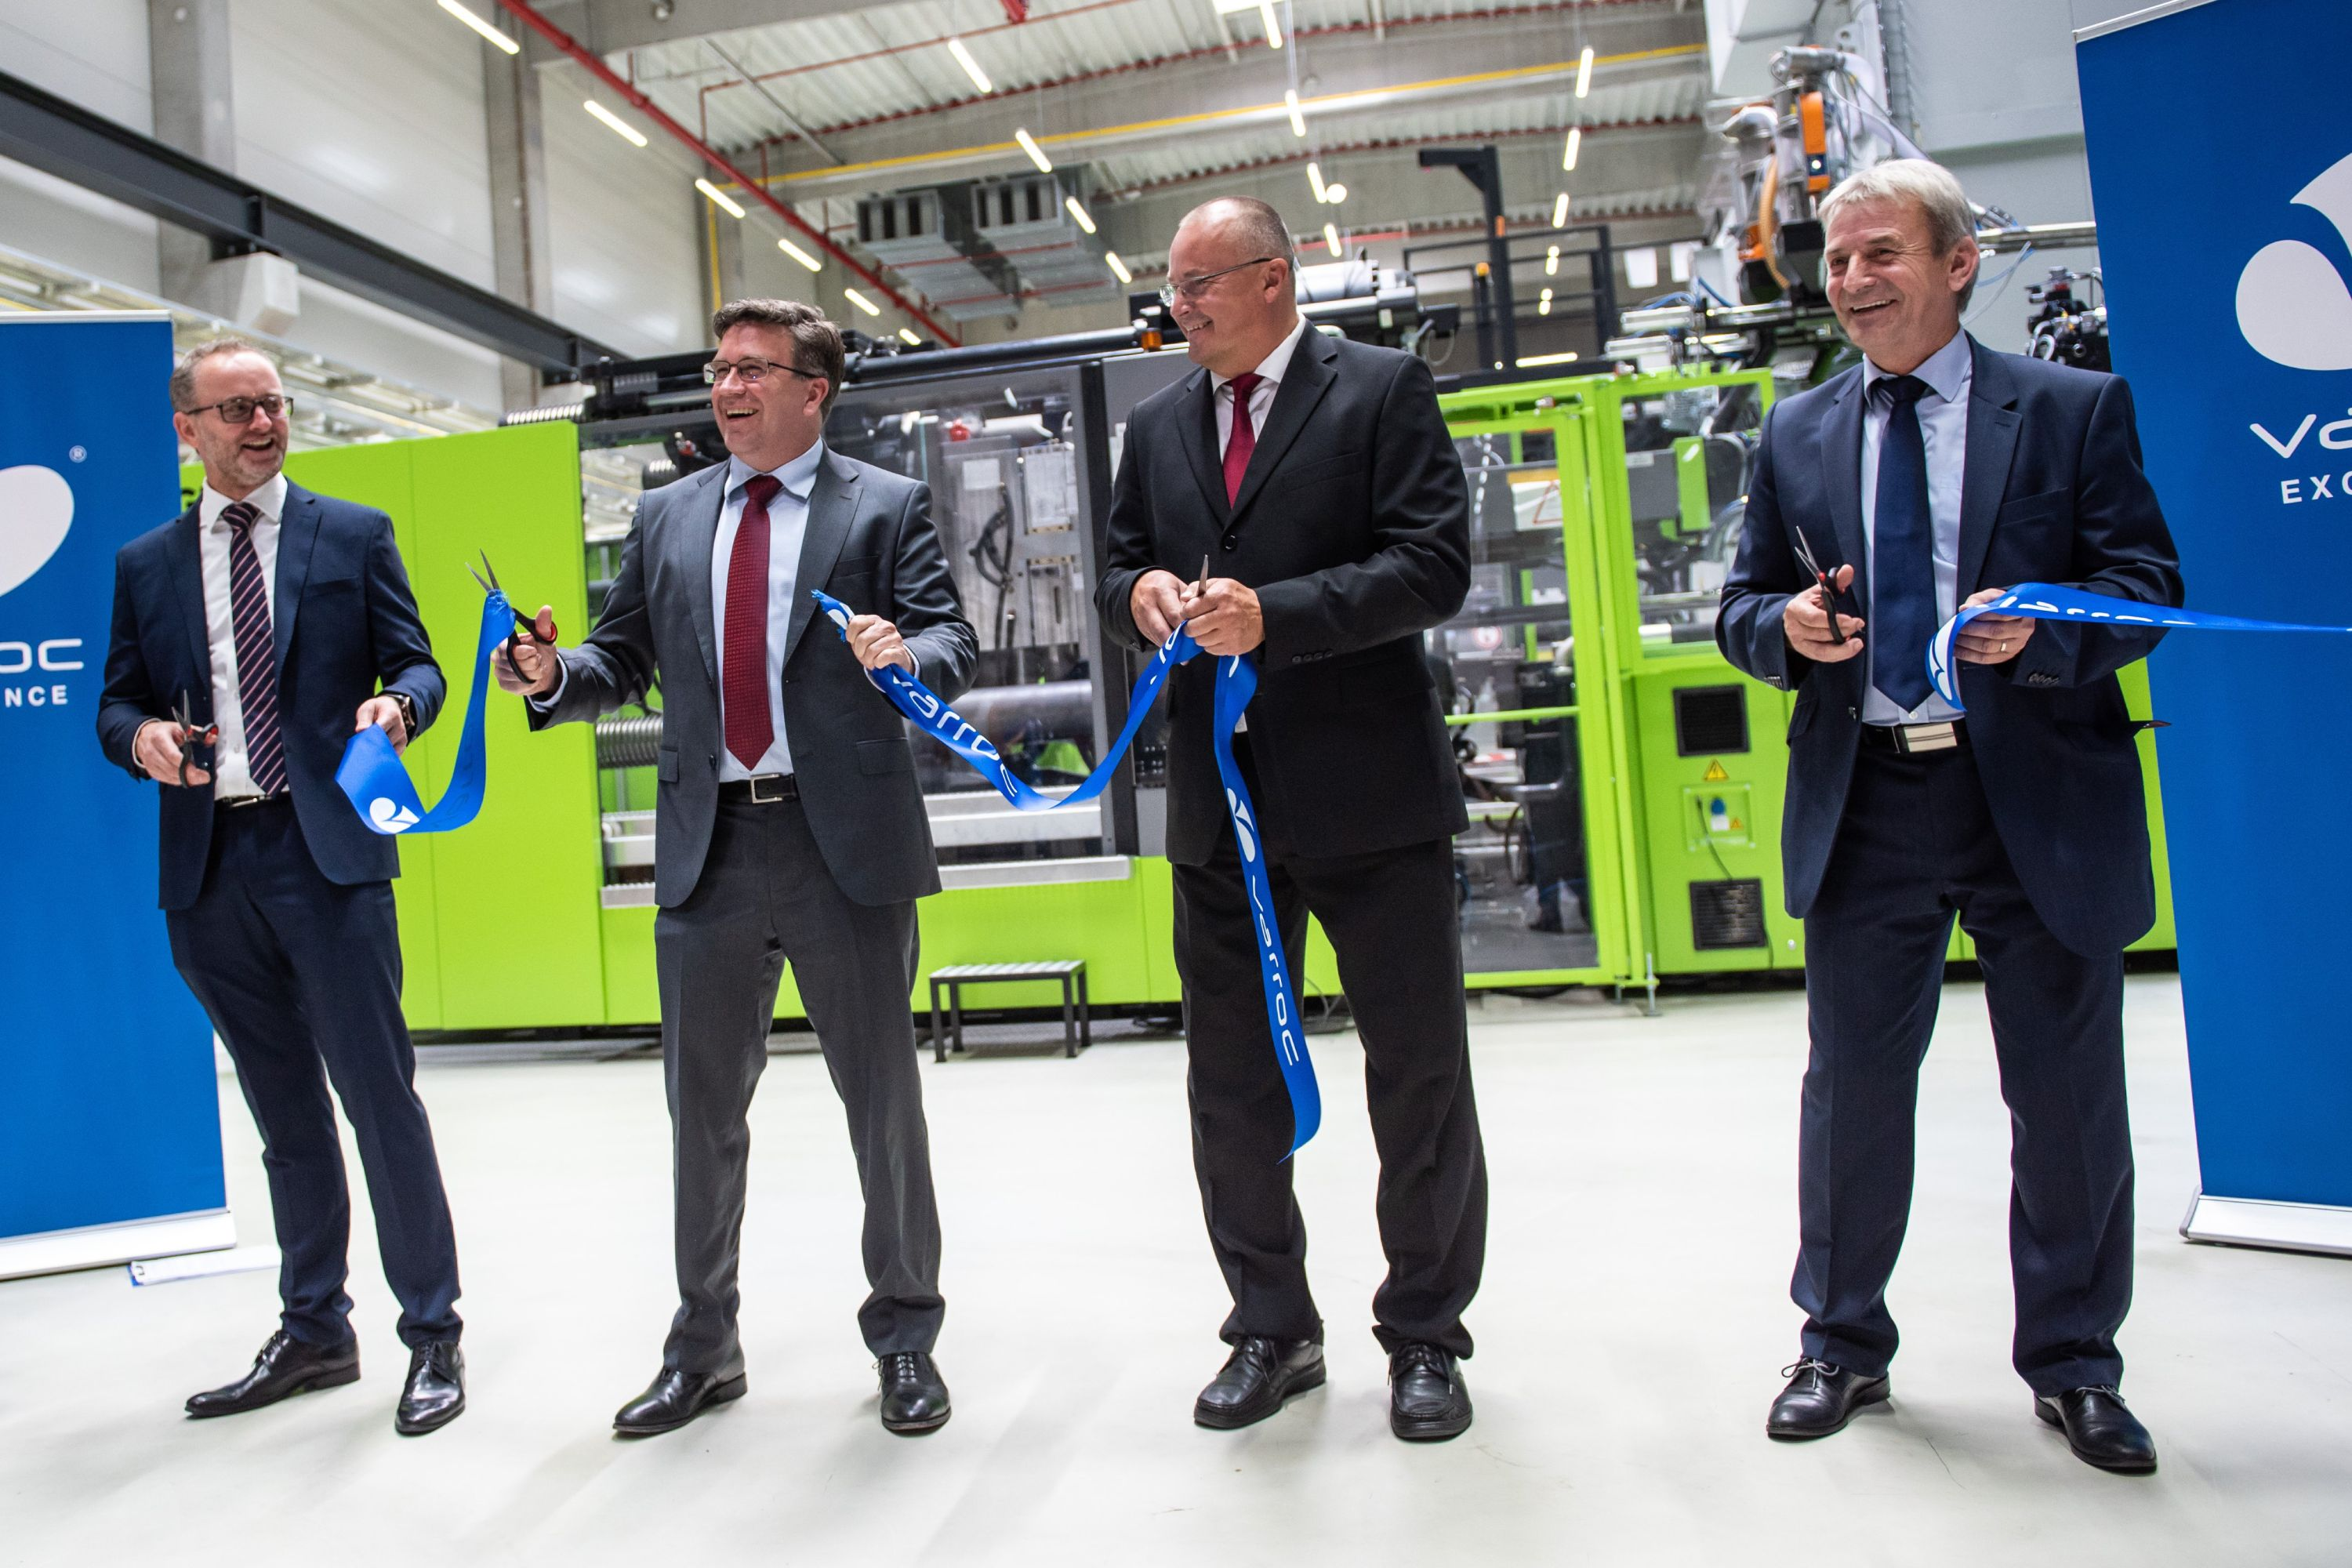 Rychvald Expansion ribbon cutting